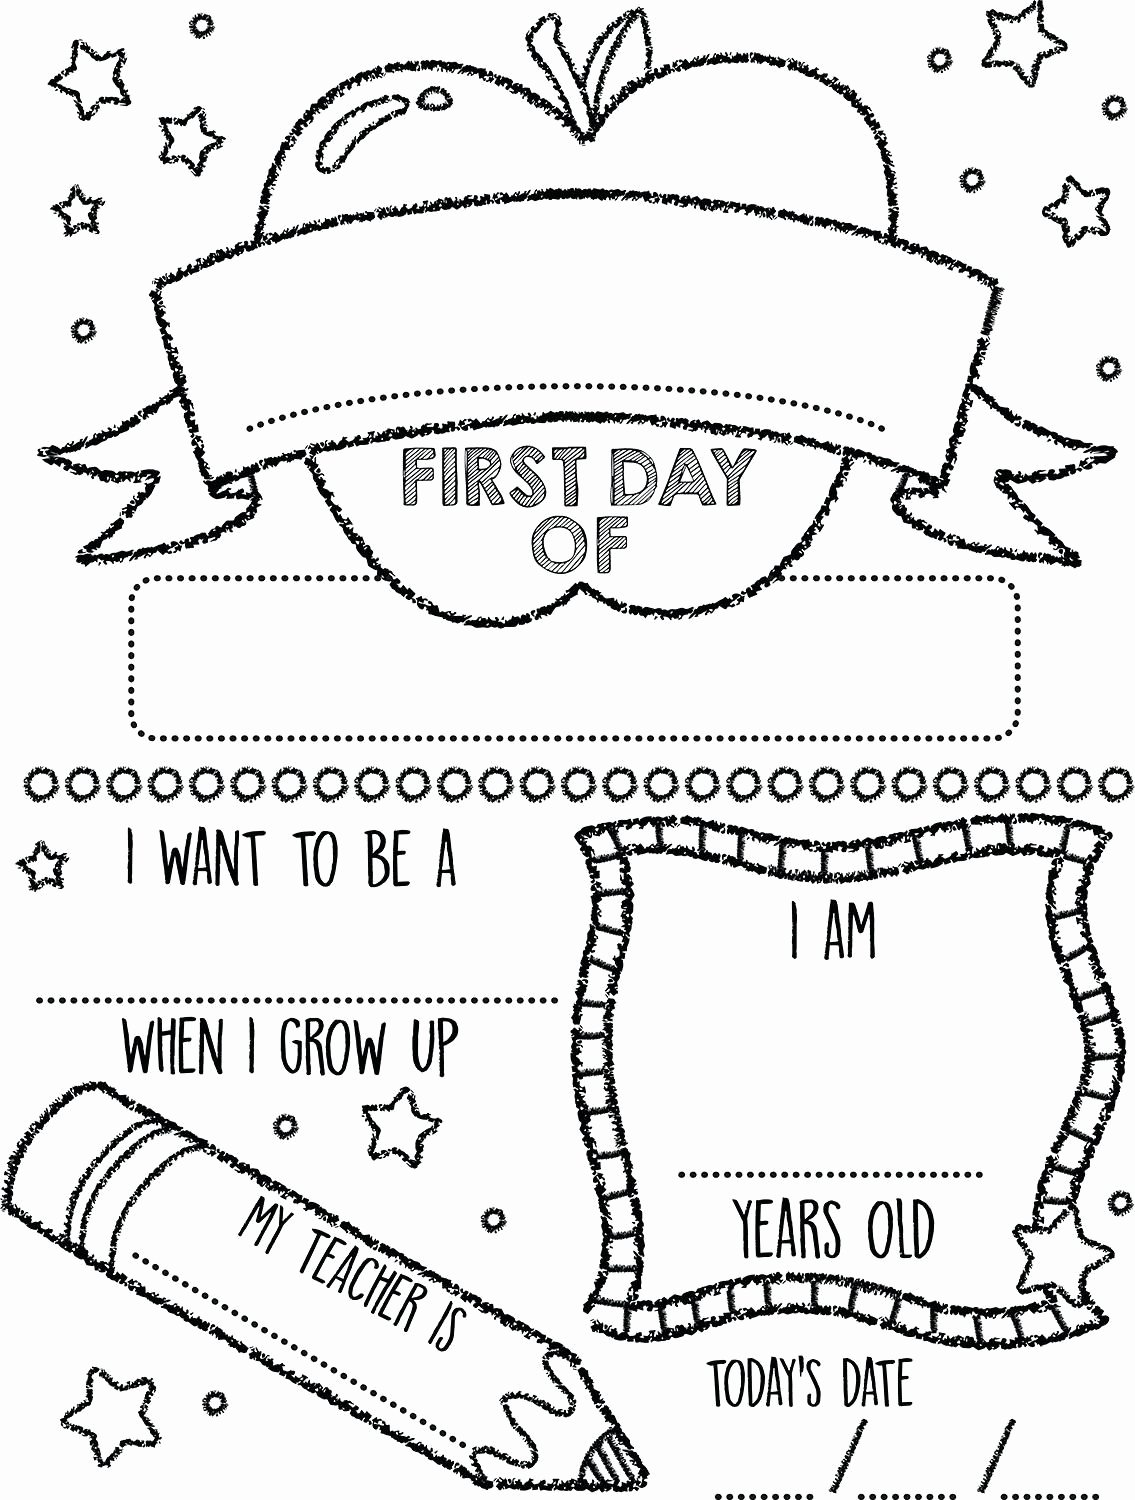 First Day Of School Worksheets for Preschoolers Awesome Printable Preschool Coloring Pages Summerst Day Kindergarten